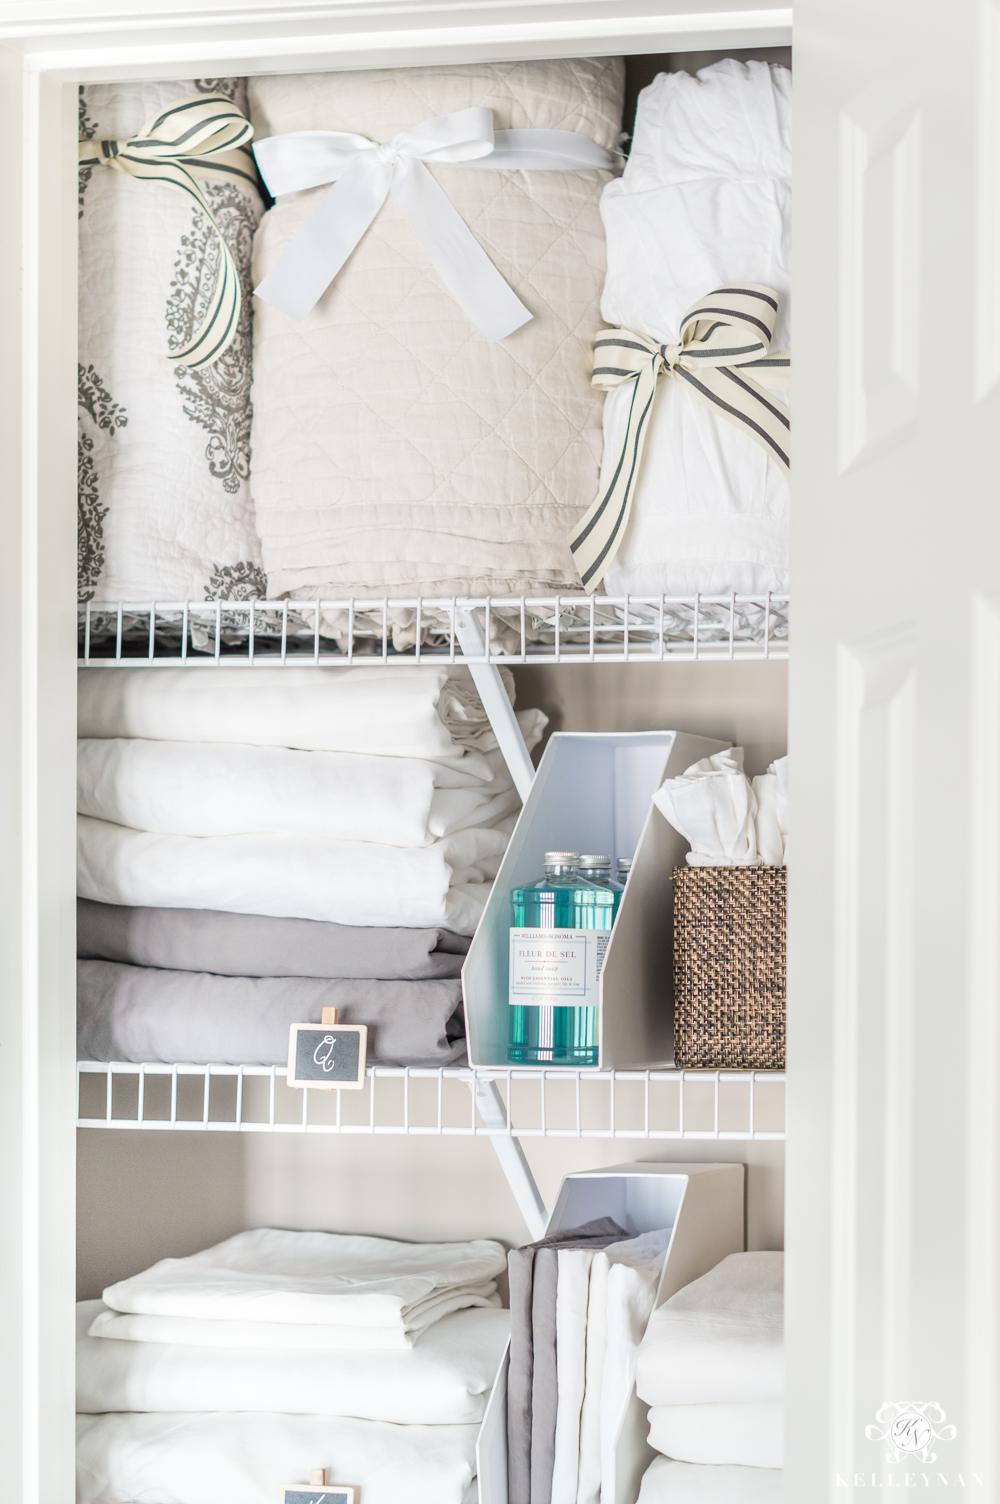 Sheet organization in a tiny linen closet